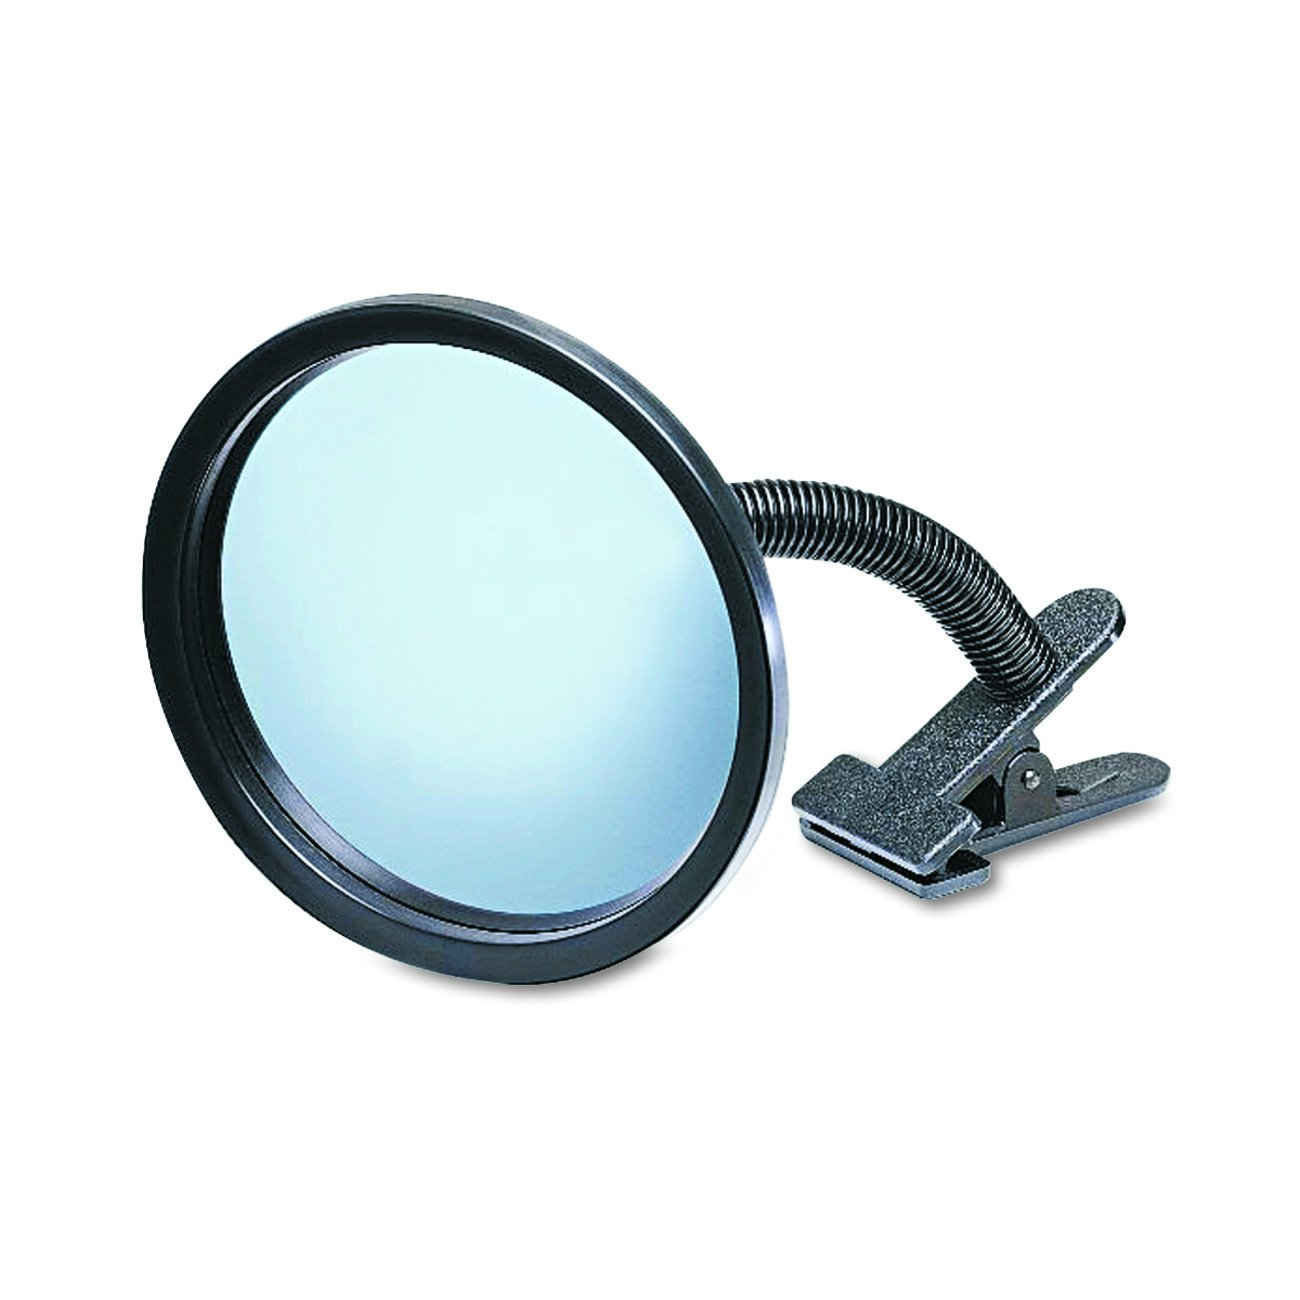 """See All ICU7 Personal Safety and Security Clip-On Convex Security Mirror, 7"""" Diameter (Pack of 1)"""